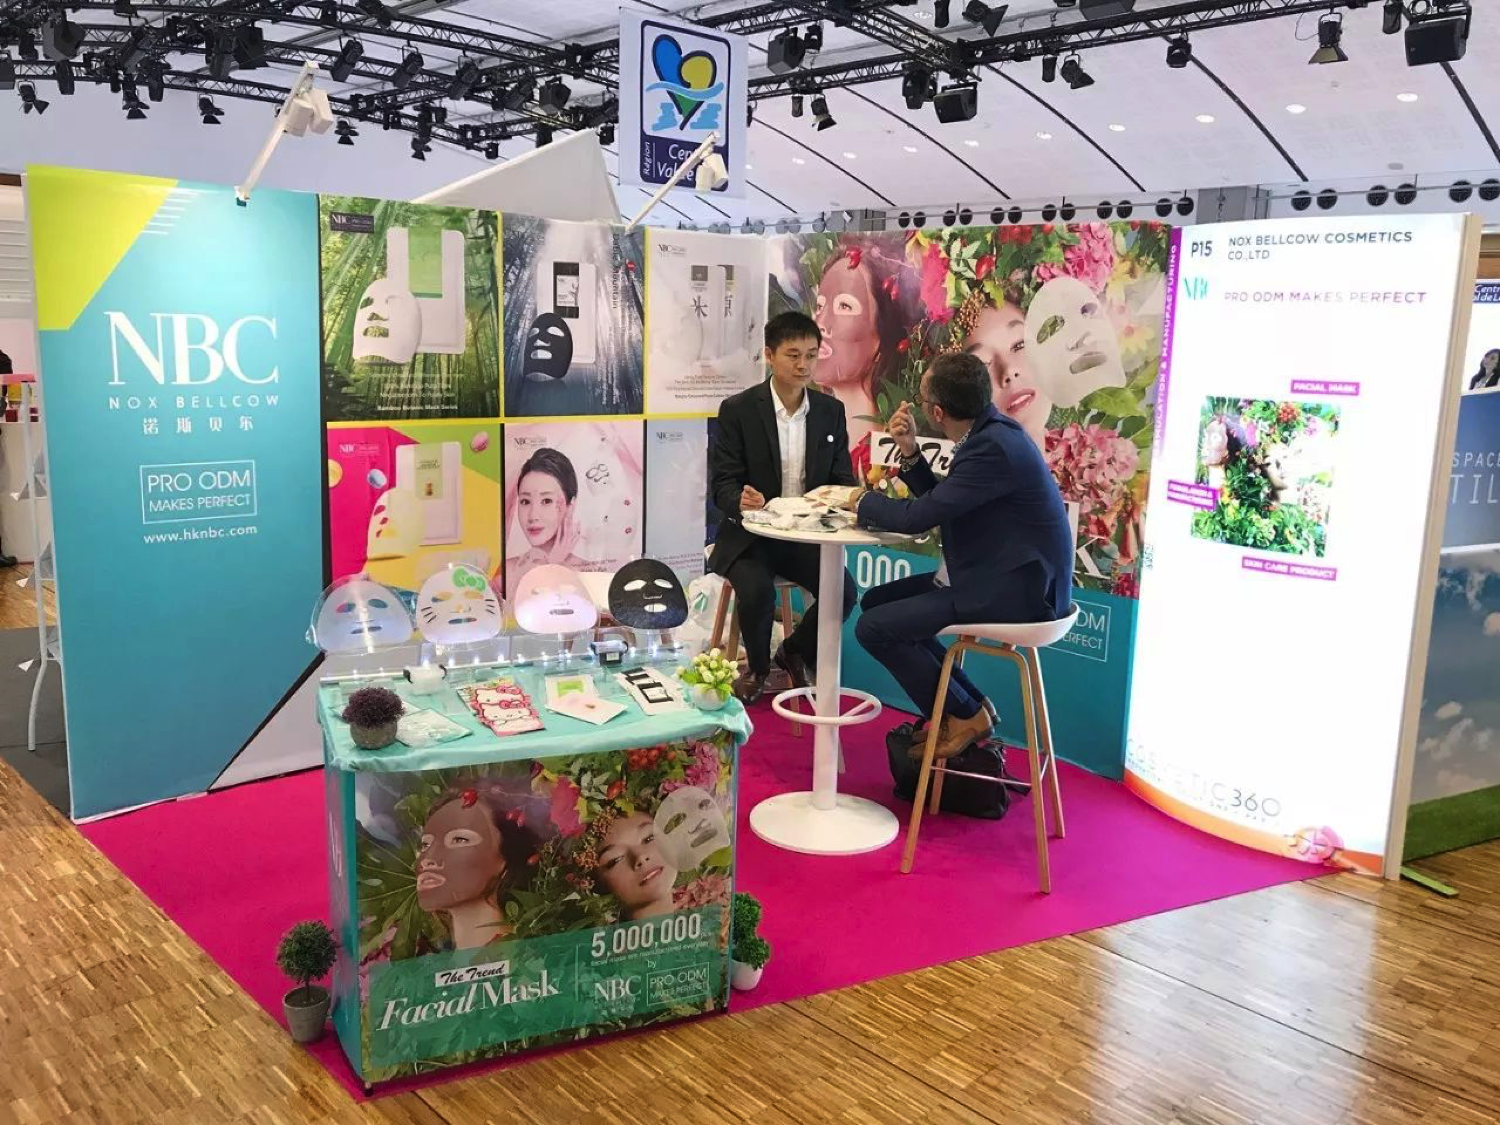 Nox Bellcow'S P15 Booth at Cosmetic360